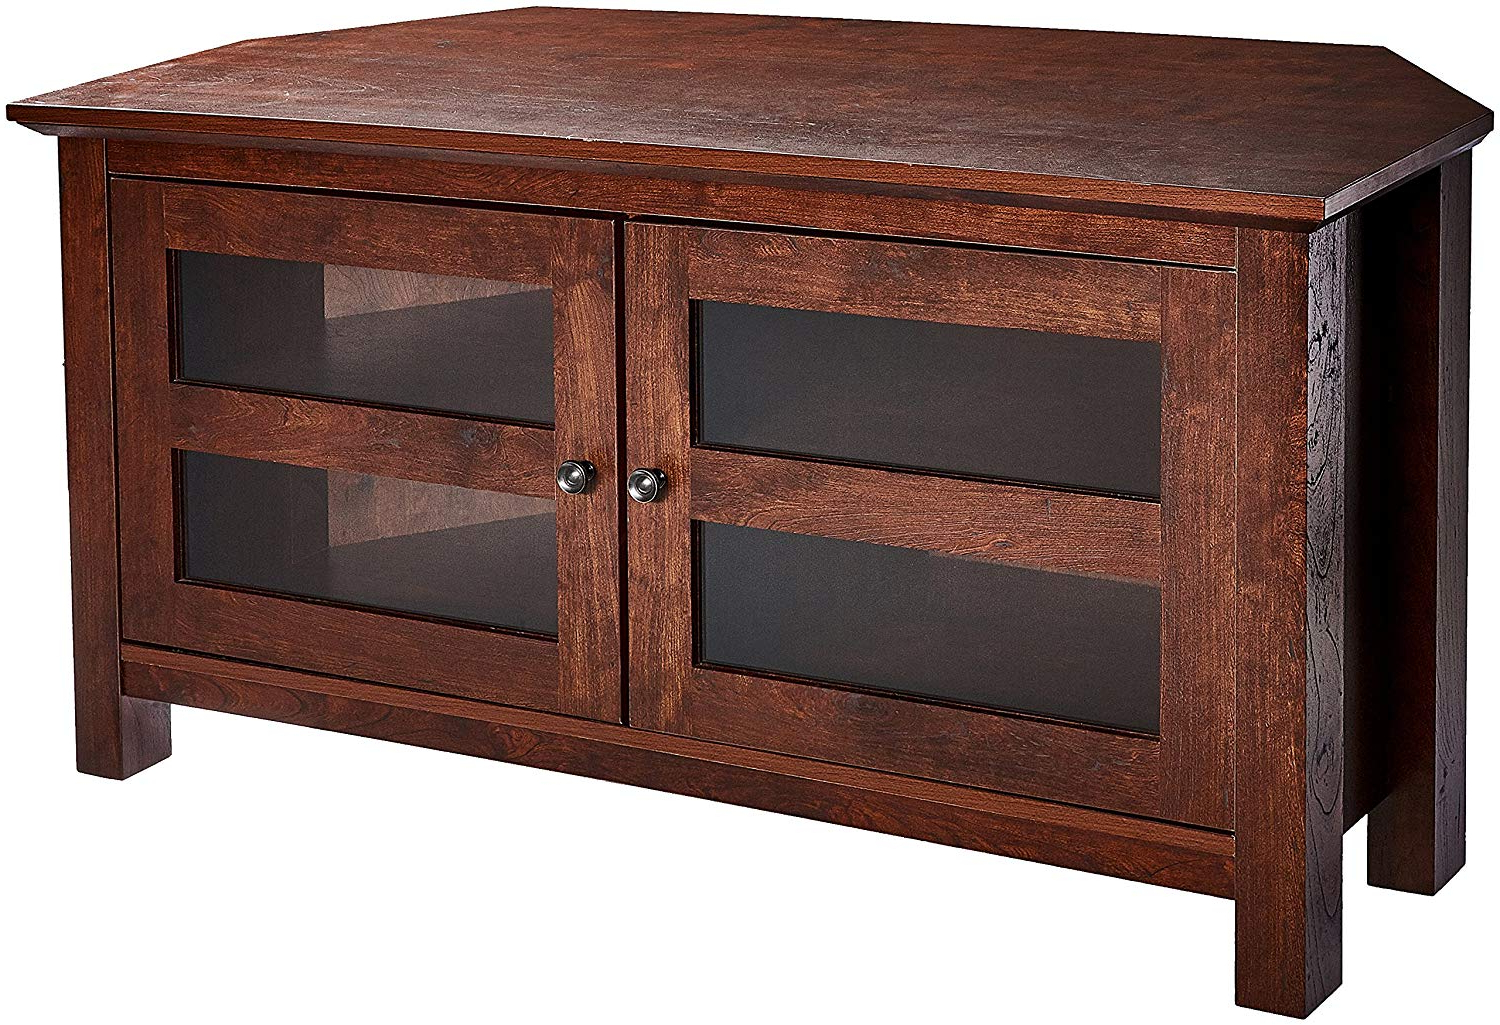 Corner Tv Stands For 55 Inch Tv With Regard To Best And Newest Cheap 55 Inch Corner Tv Stand, Find 55 Inch Corner Tv Stand Deals On (View 18 of 20)